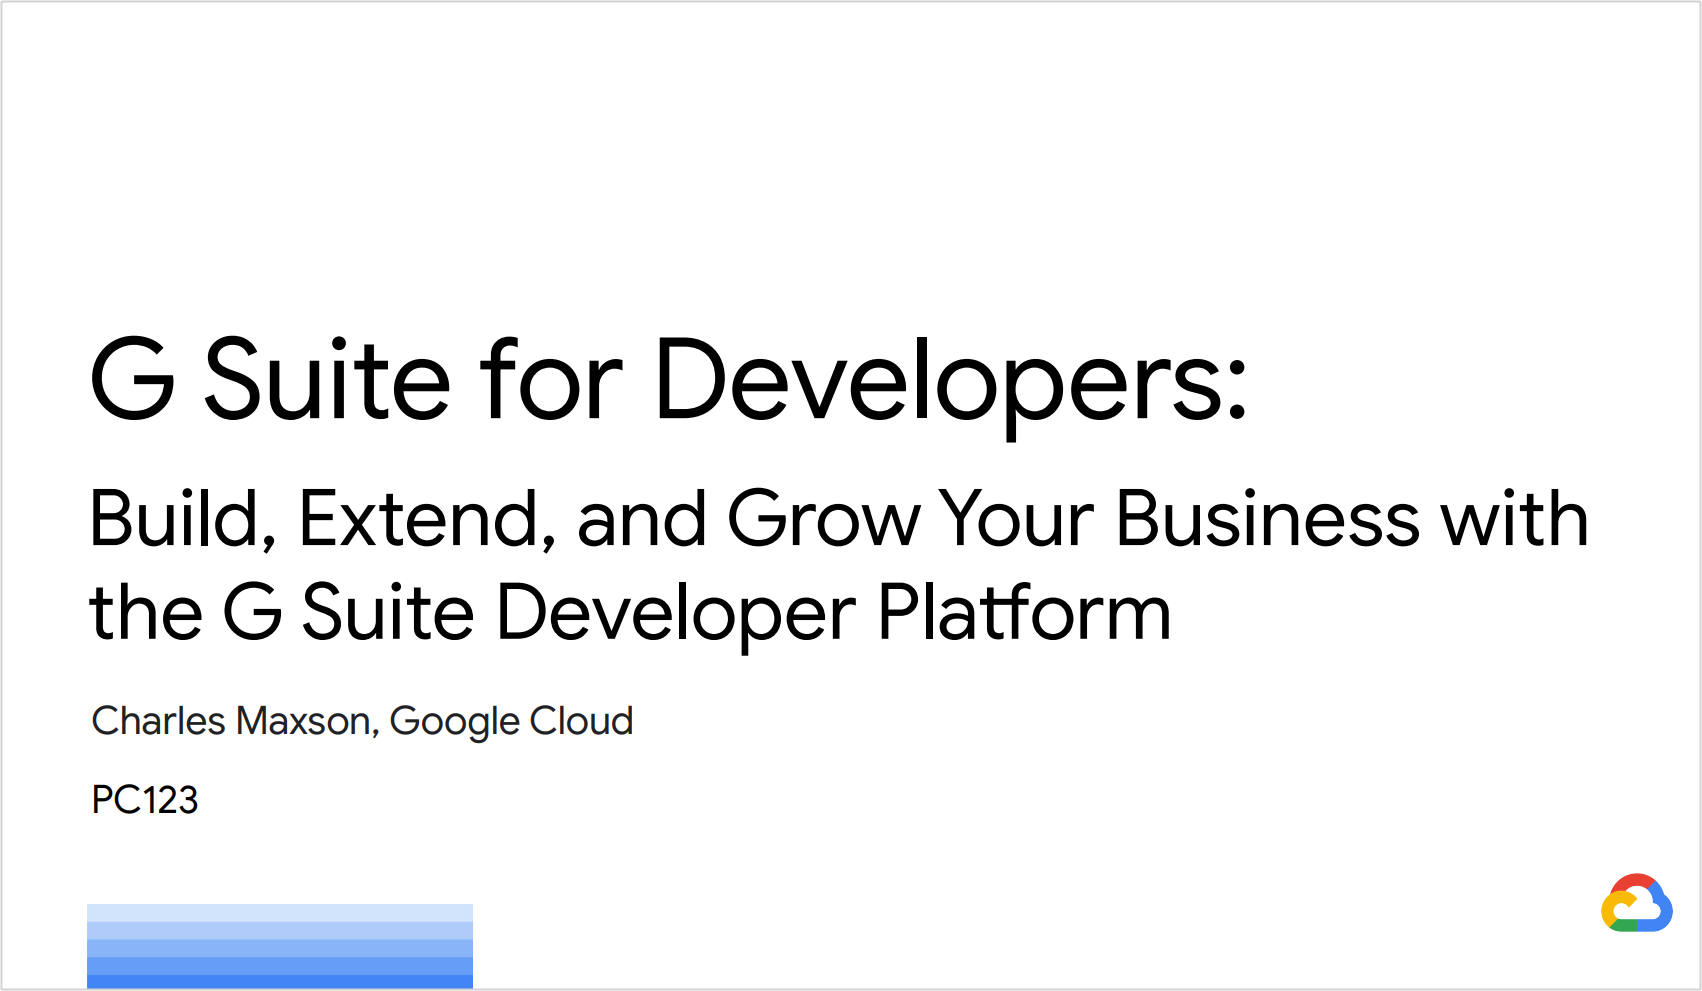 G Suite for Developers: Build, Extend, and Grow Your Business with the G Suite Developer Platform